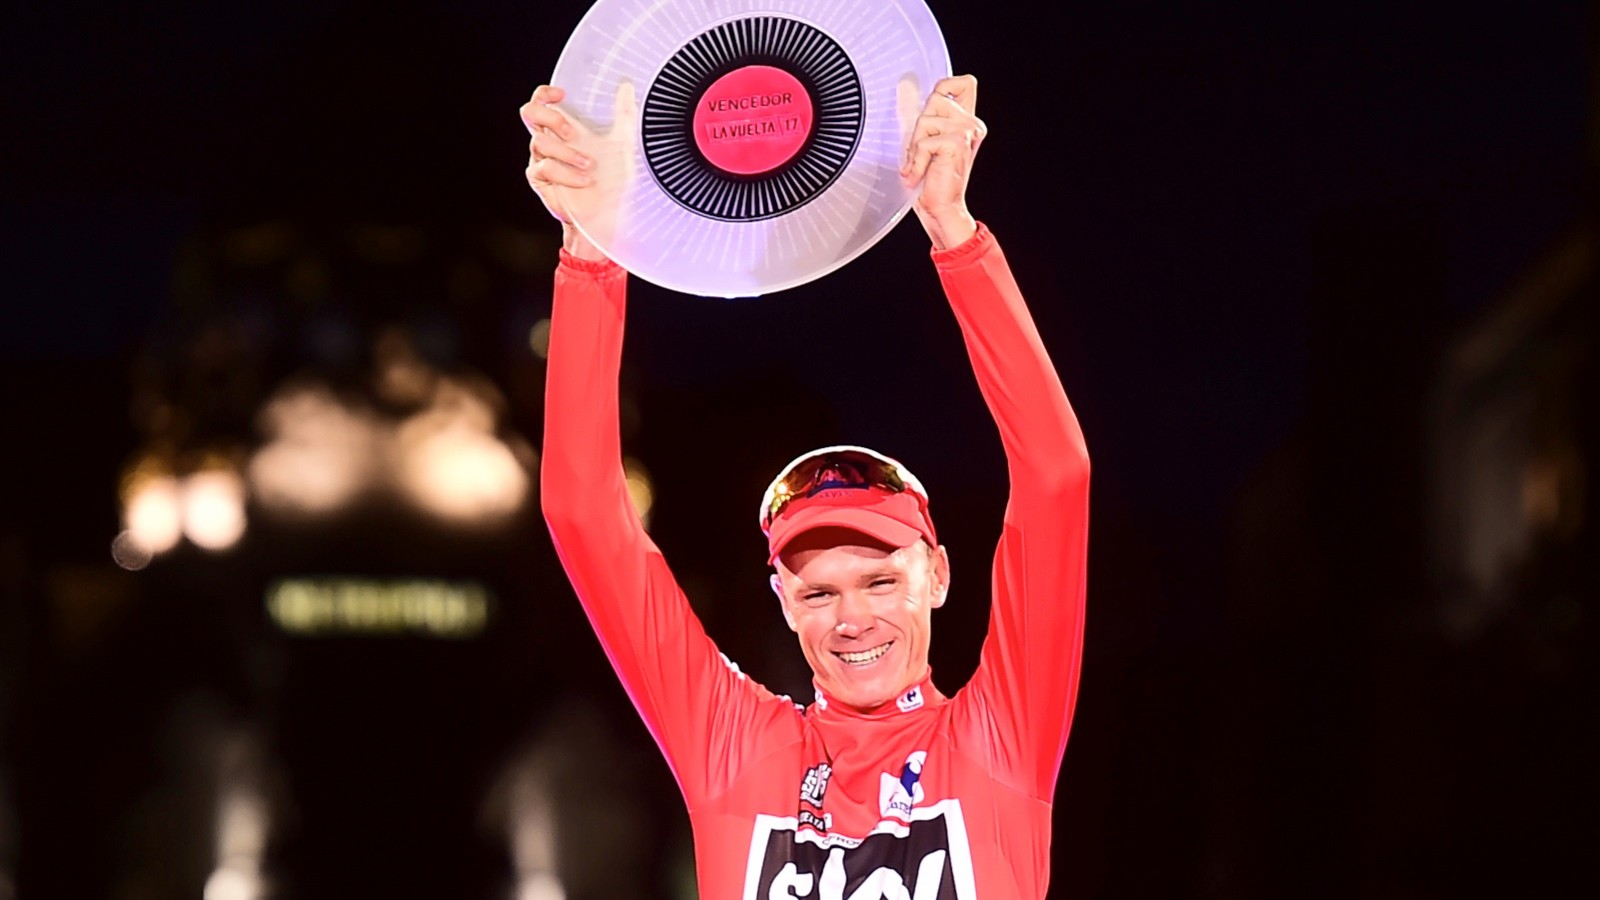 Chris Froome celebrates after winning the 72nd edition of the Vuelta